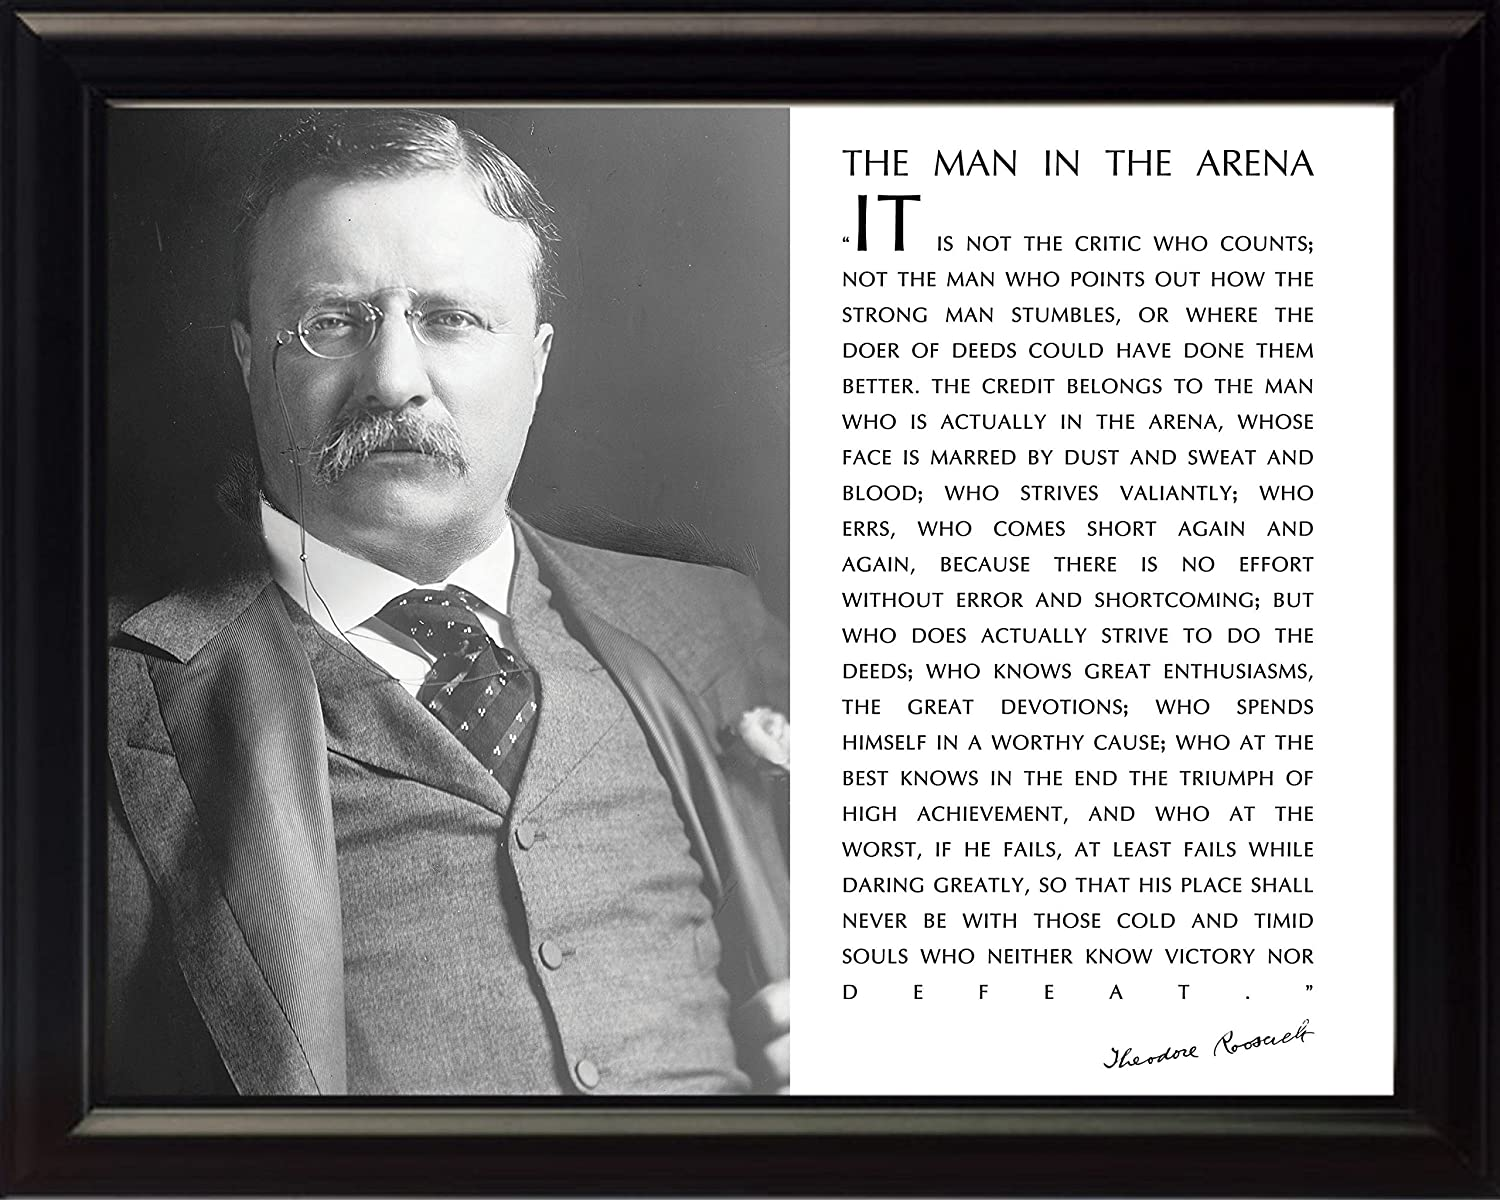 Theodore Teddy Roosevelt The Man in The Arena Quote 8x10 Framed Picture (Black and White with Glasses Photo) wesellphotos